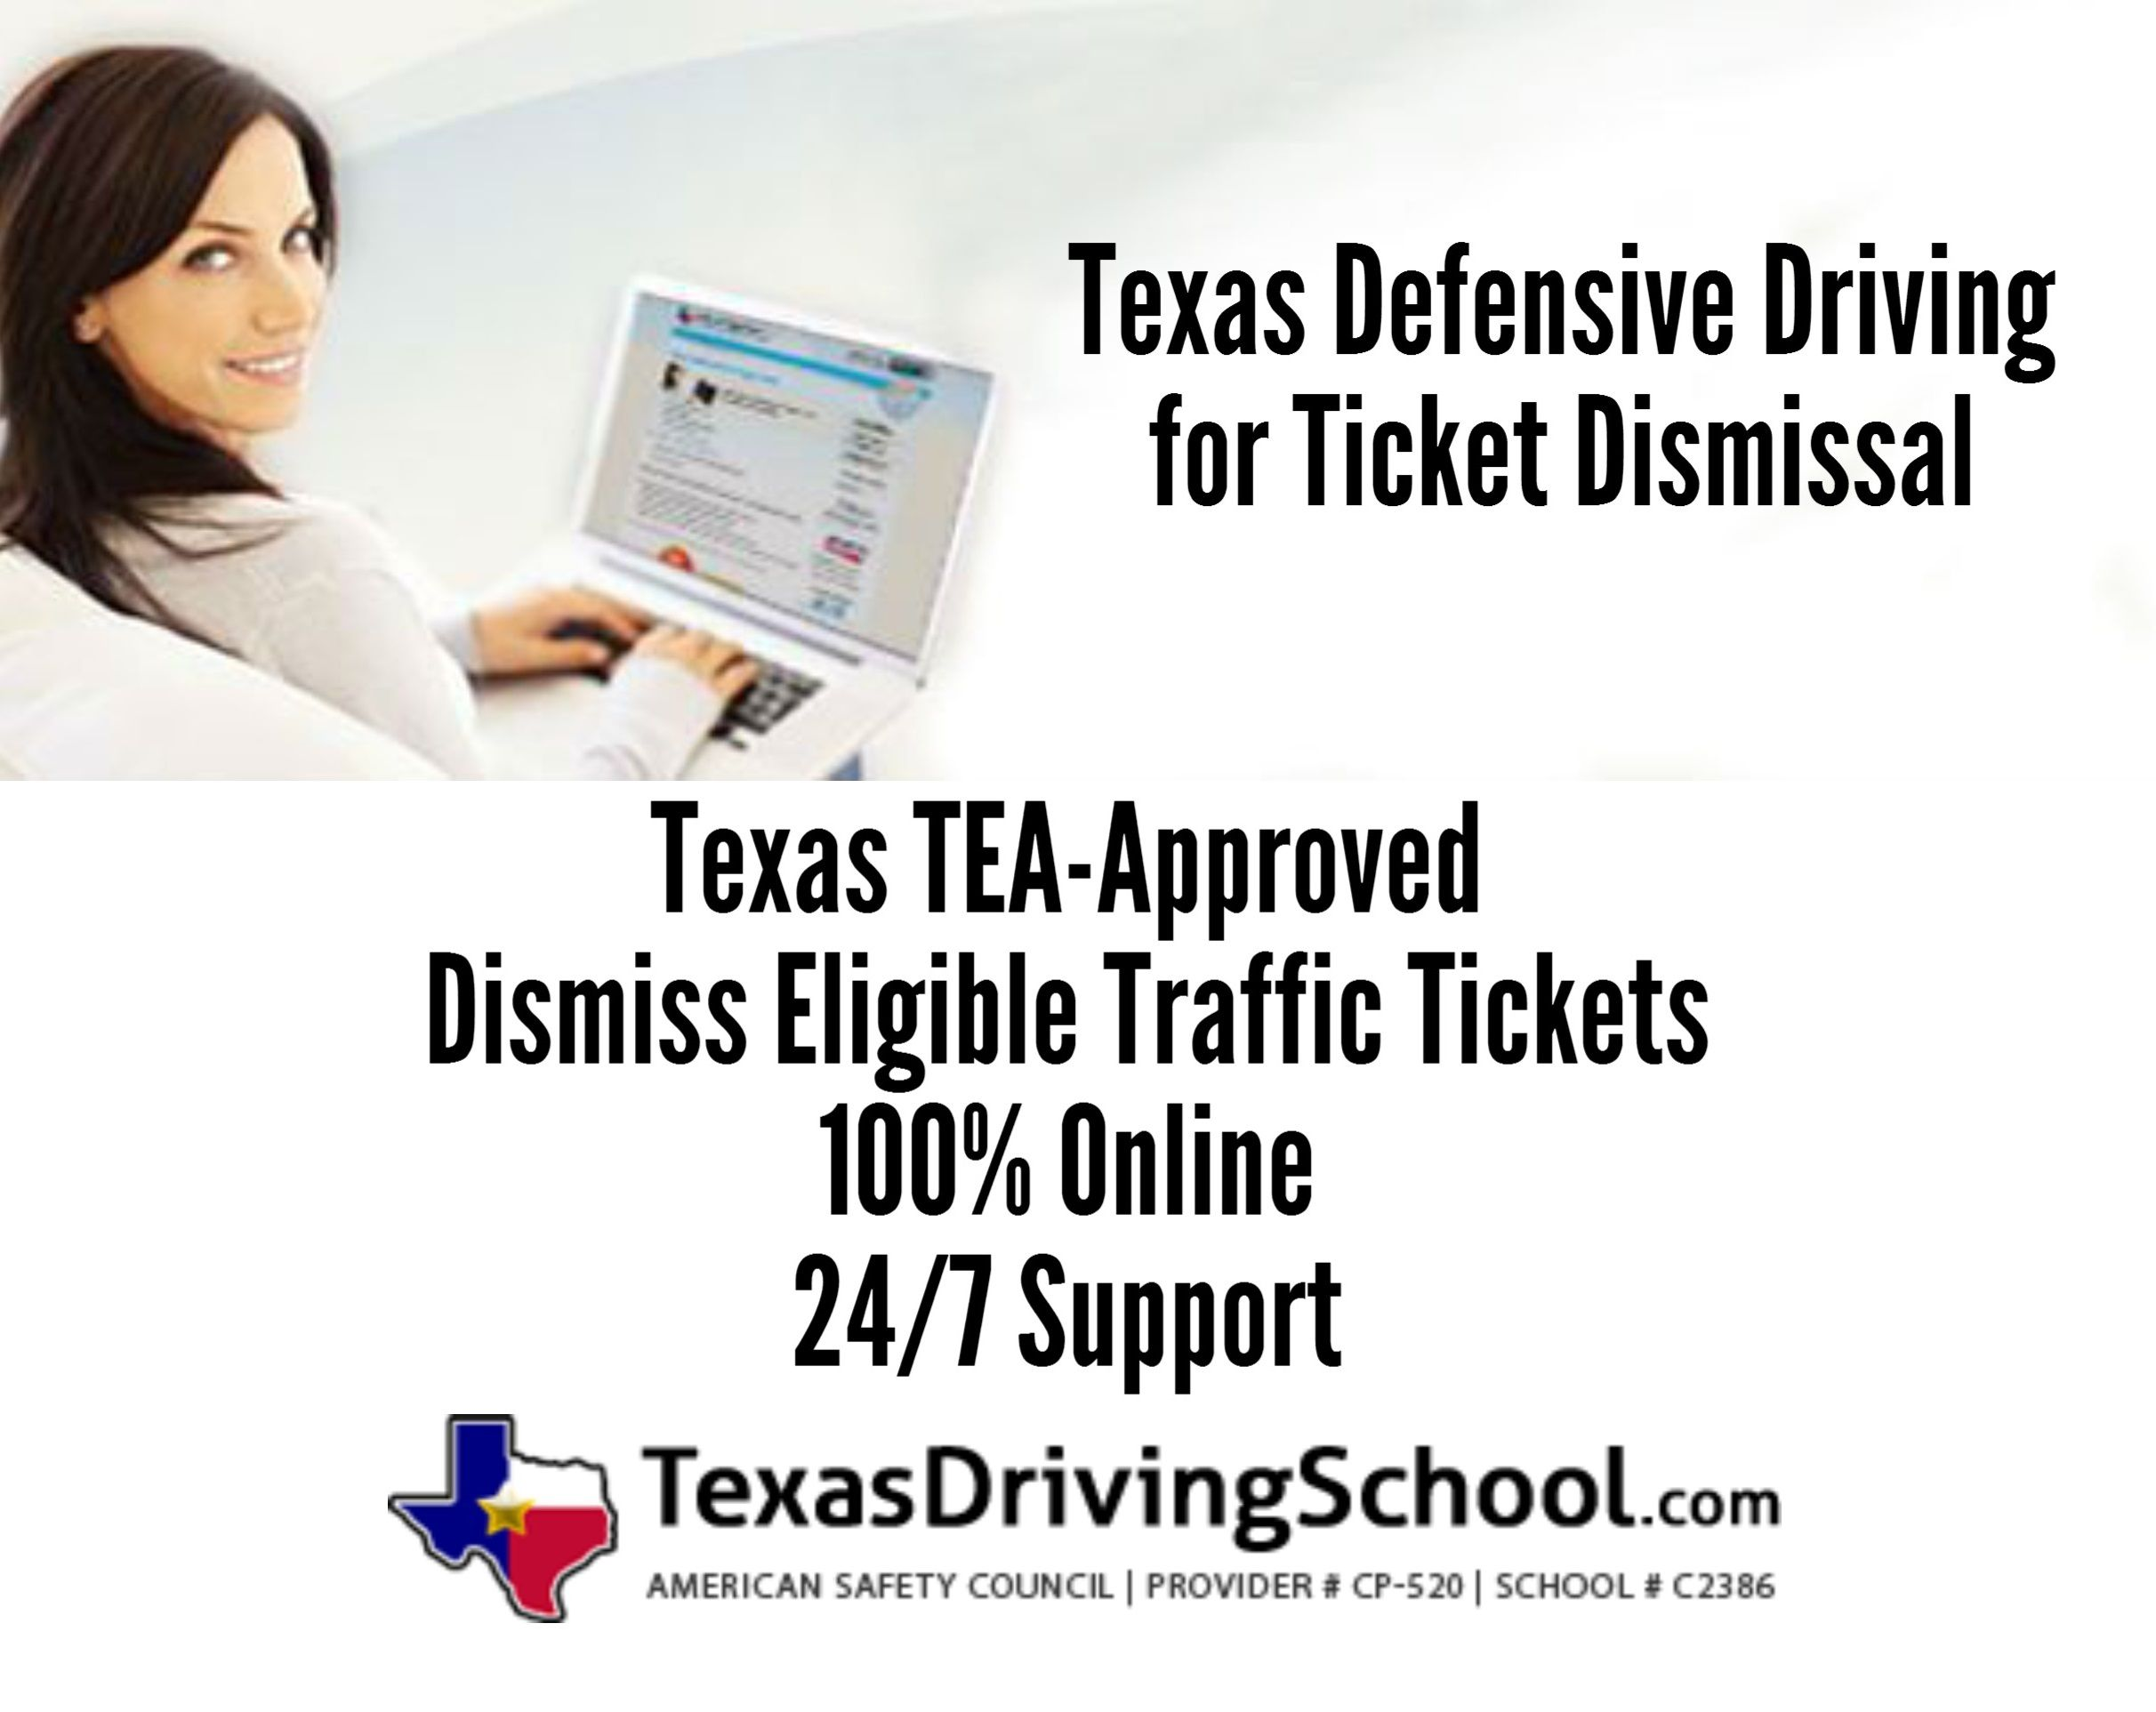 Texas Online Defensive Driving for Ticket Dismissal